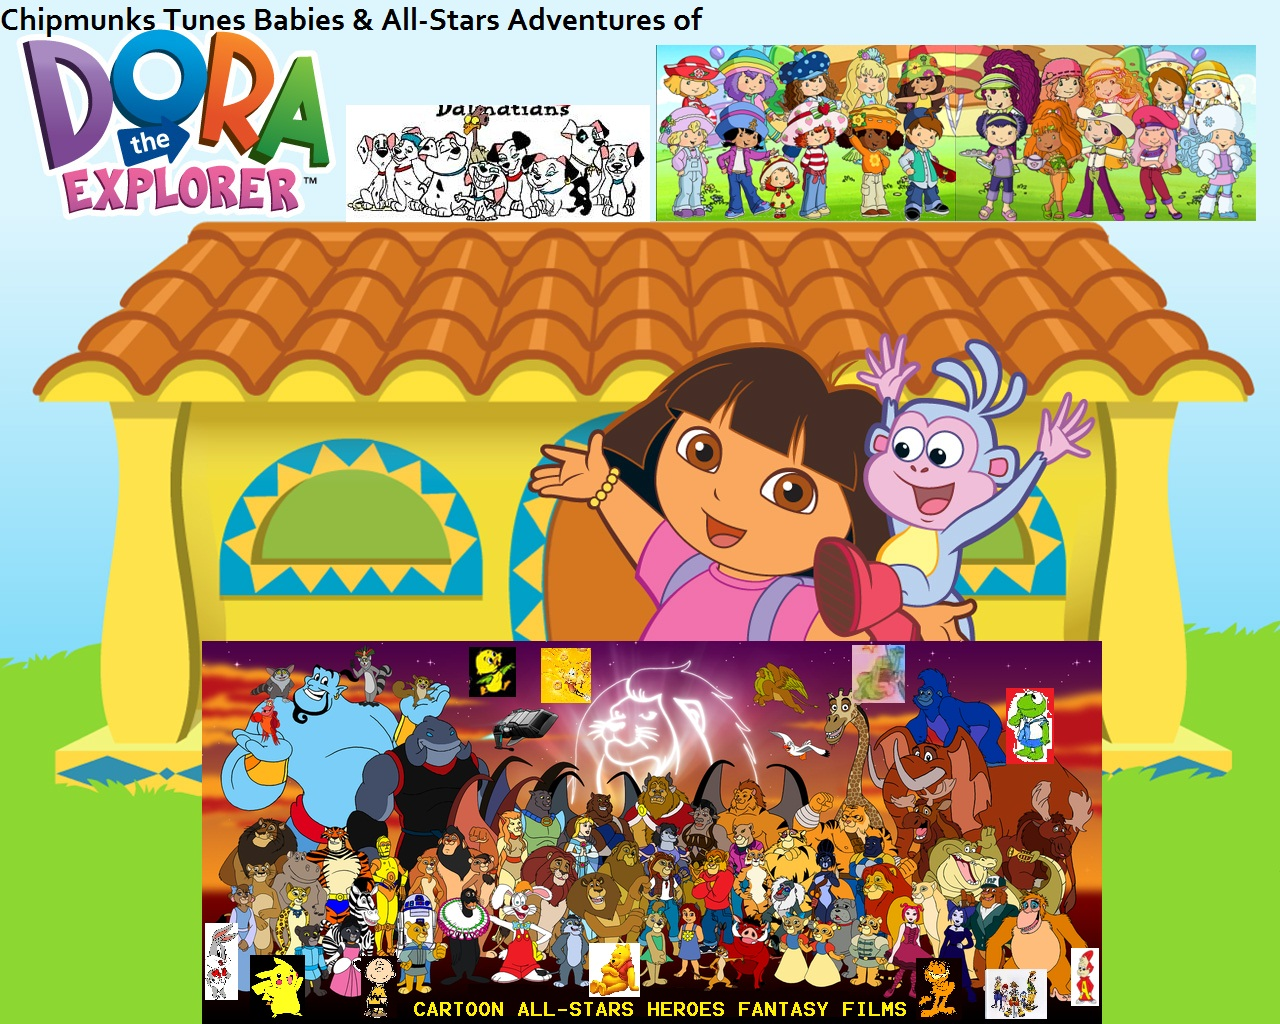 Dora the Explorer 510 The Mayan Adventure